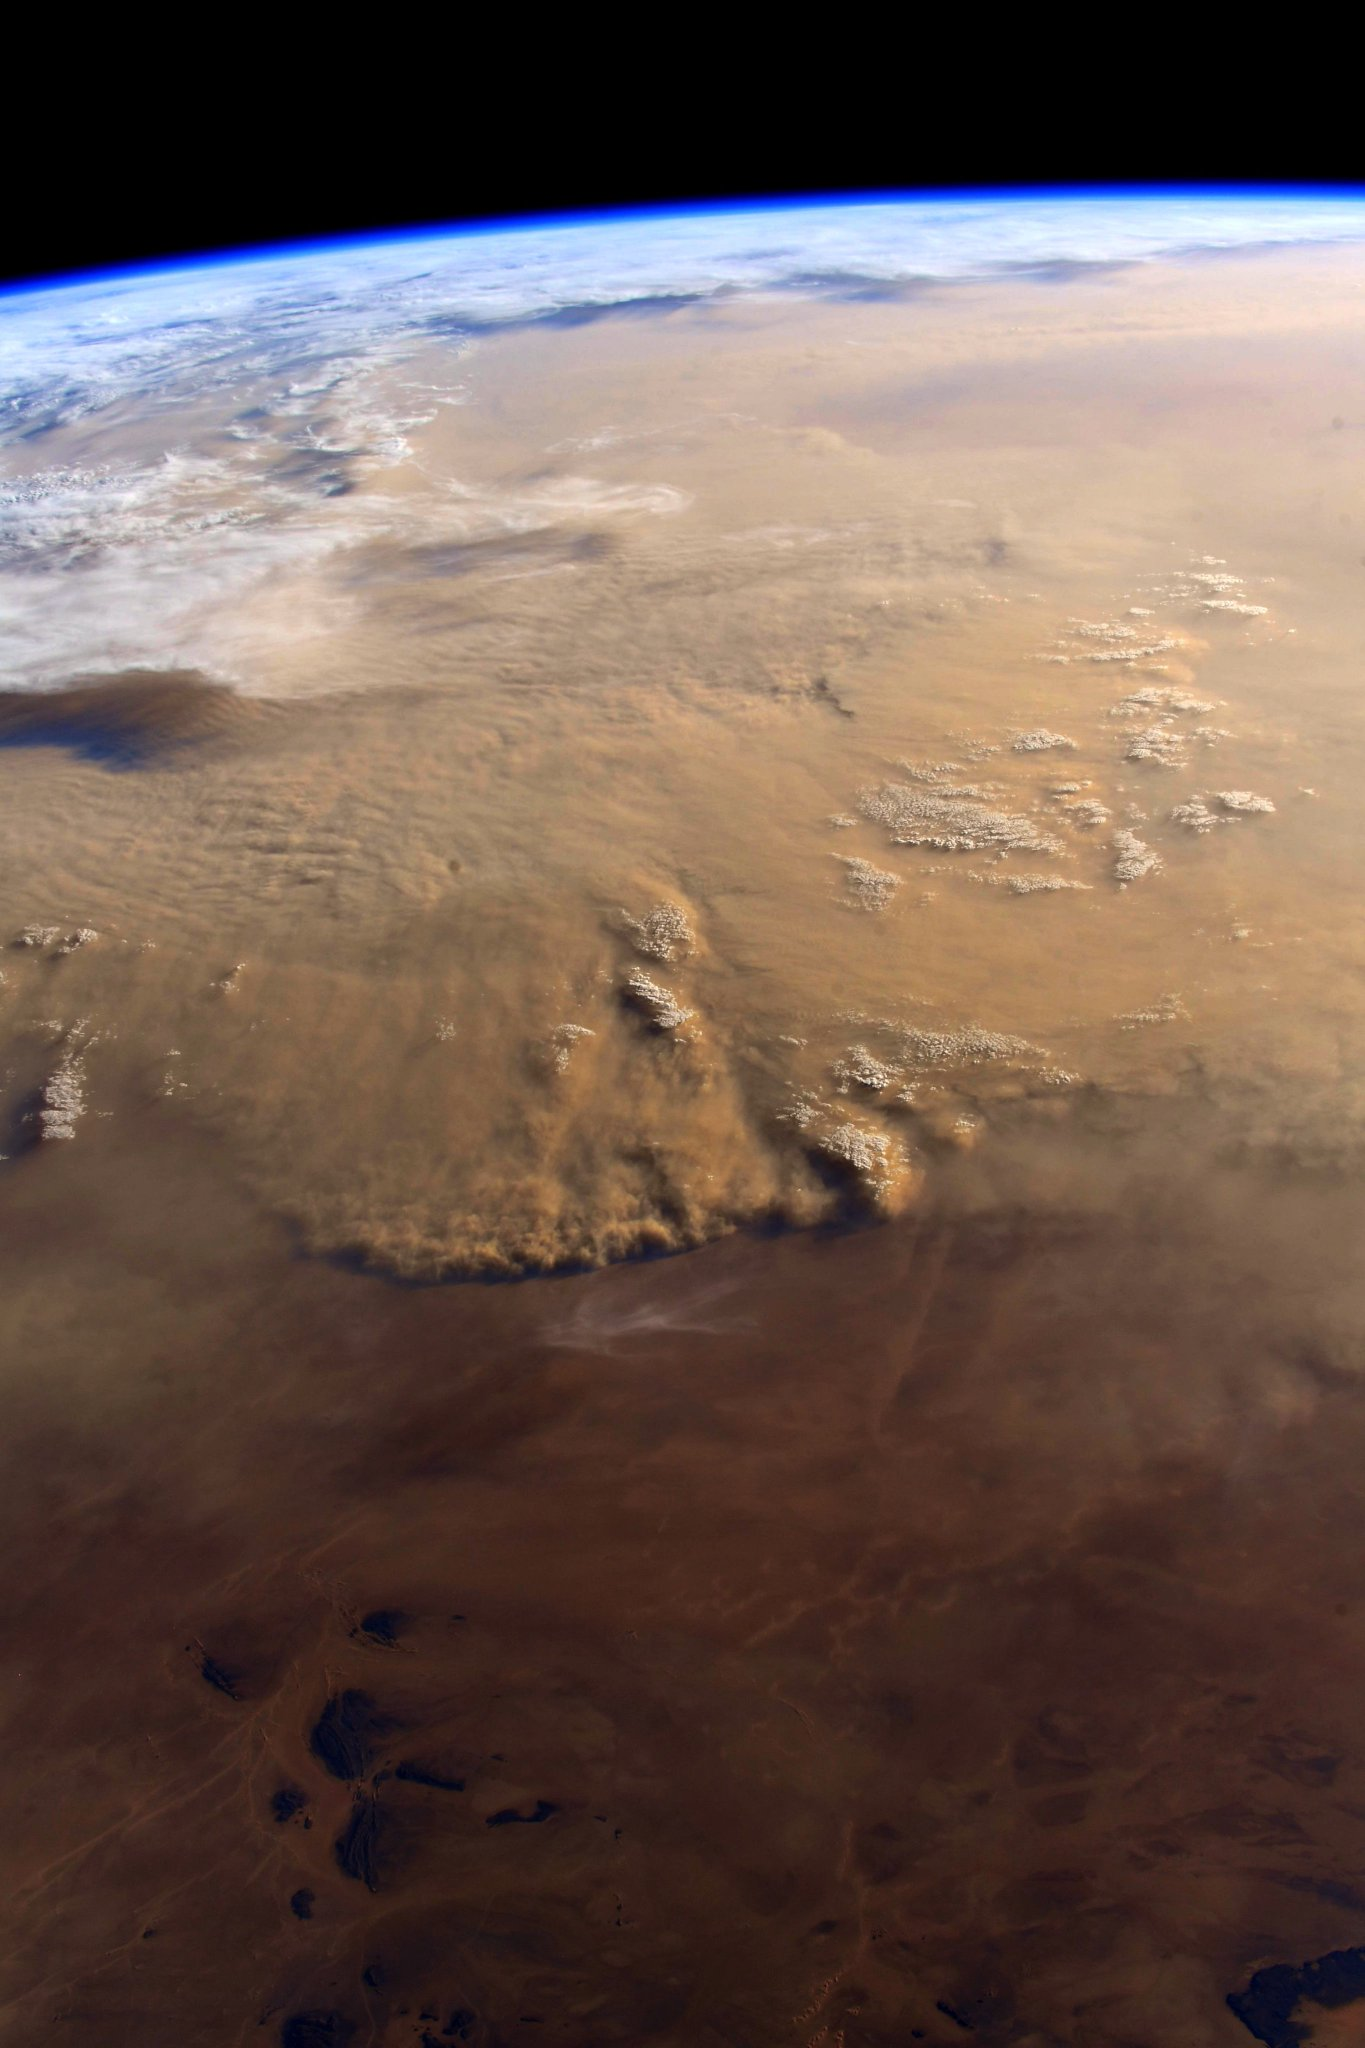 A massive sandstorm rolls across the #Sahara. (Photo & Caption: Ricky Arnold / NASA)